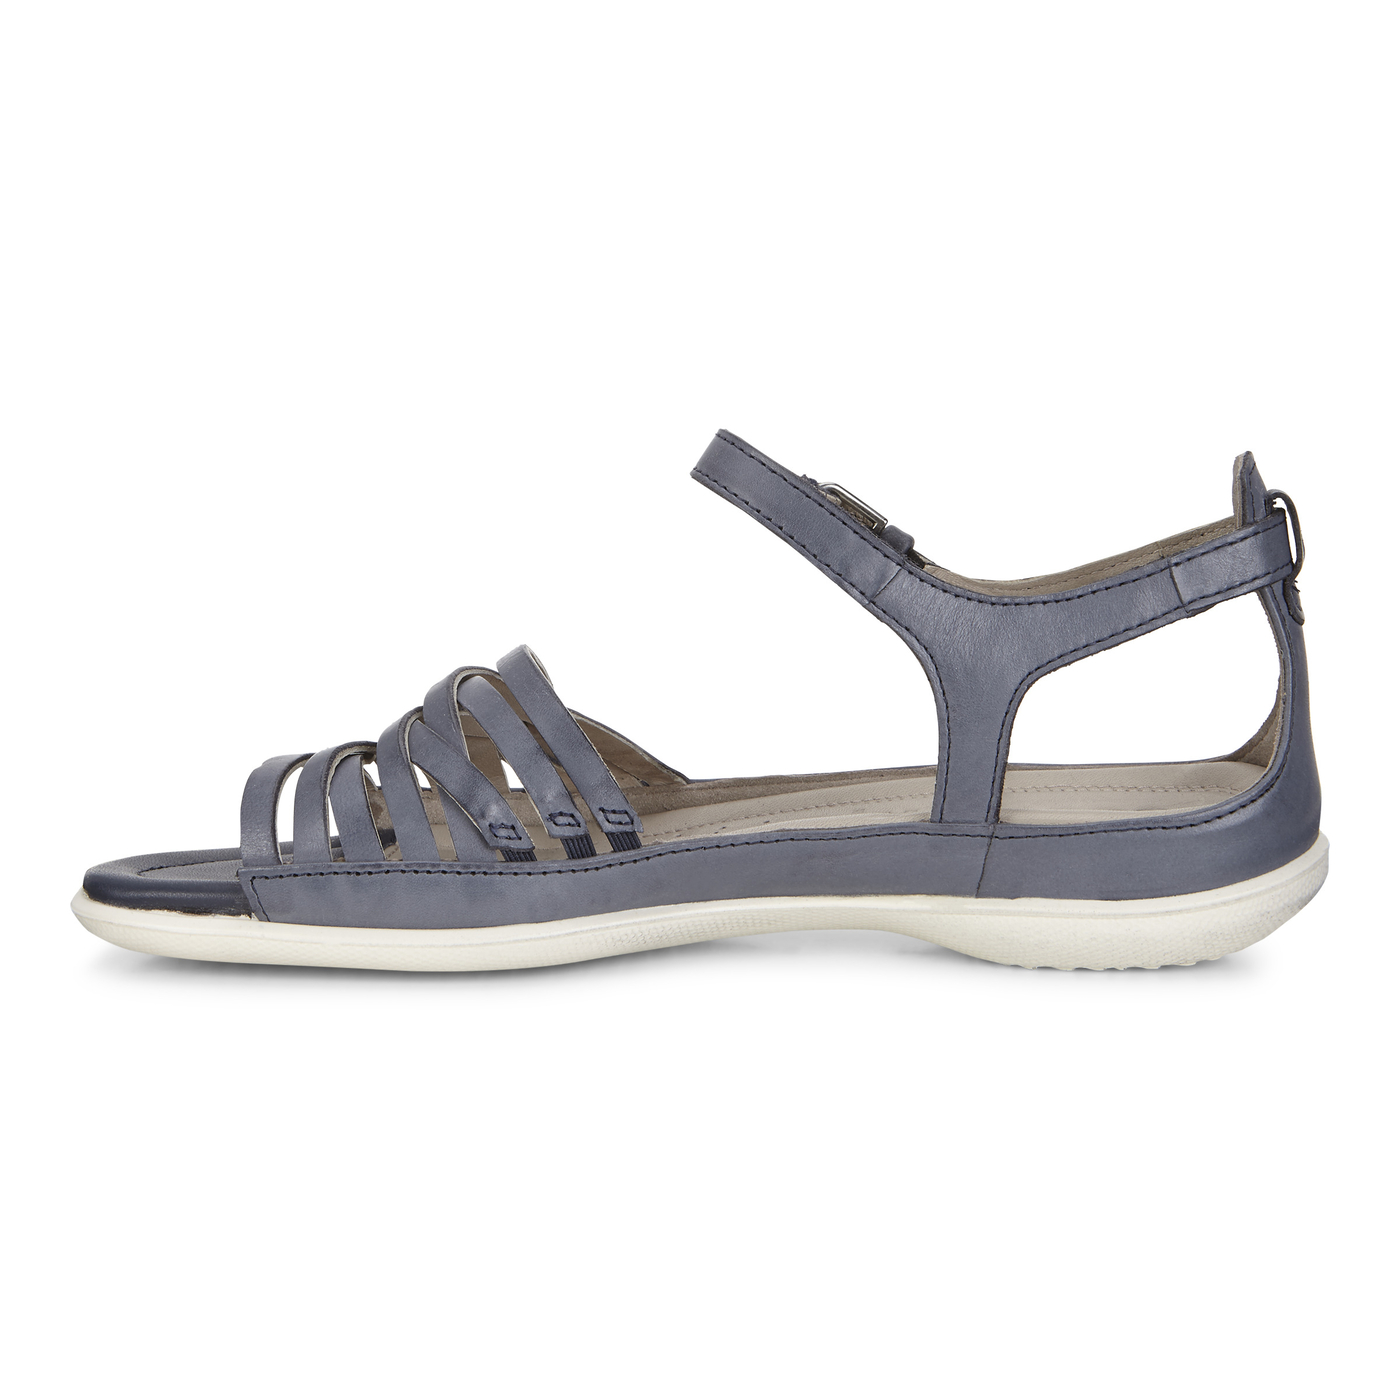 ECCO Flash Lattice Sandal